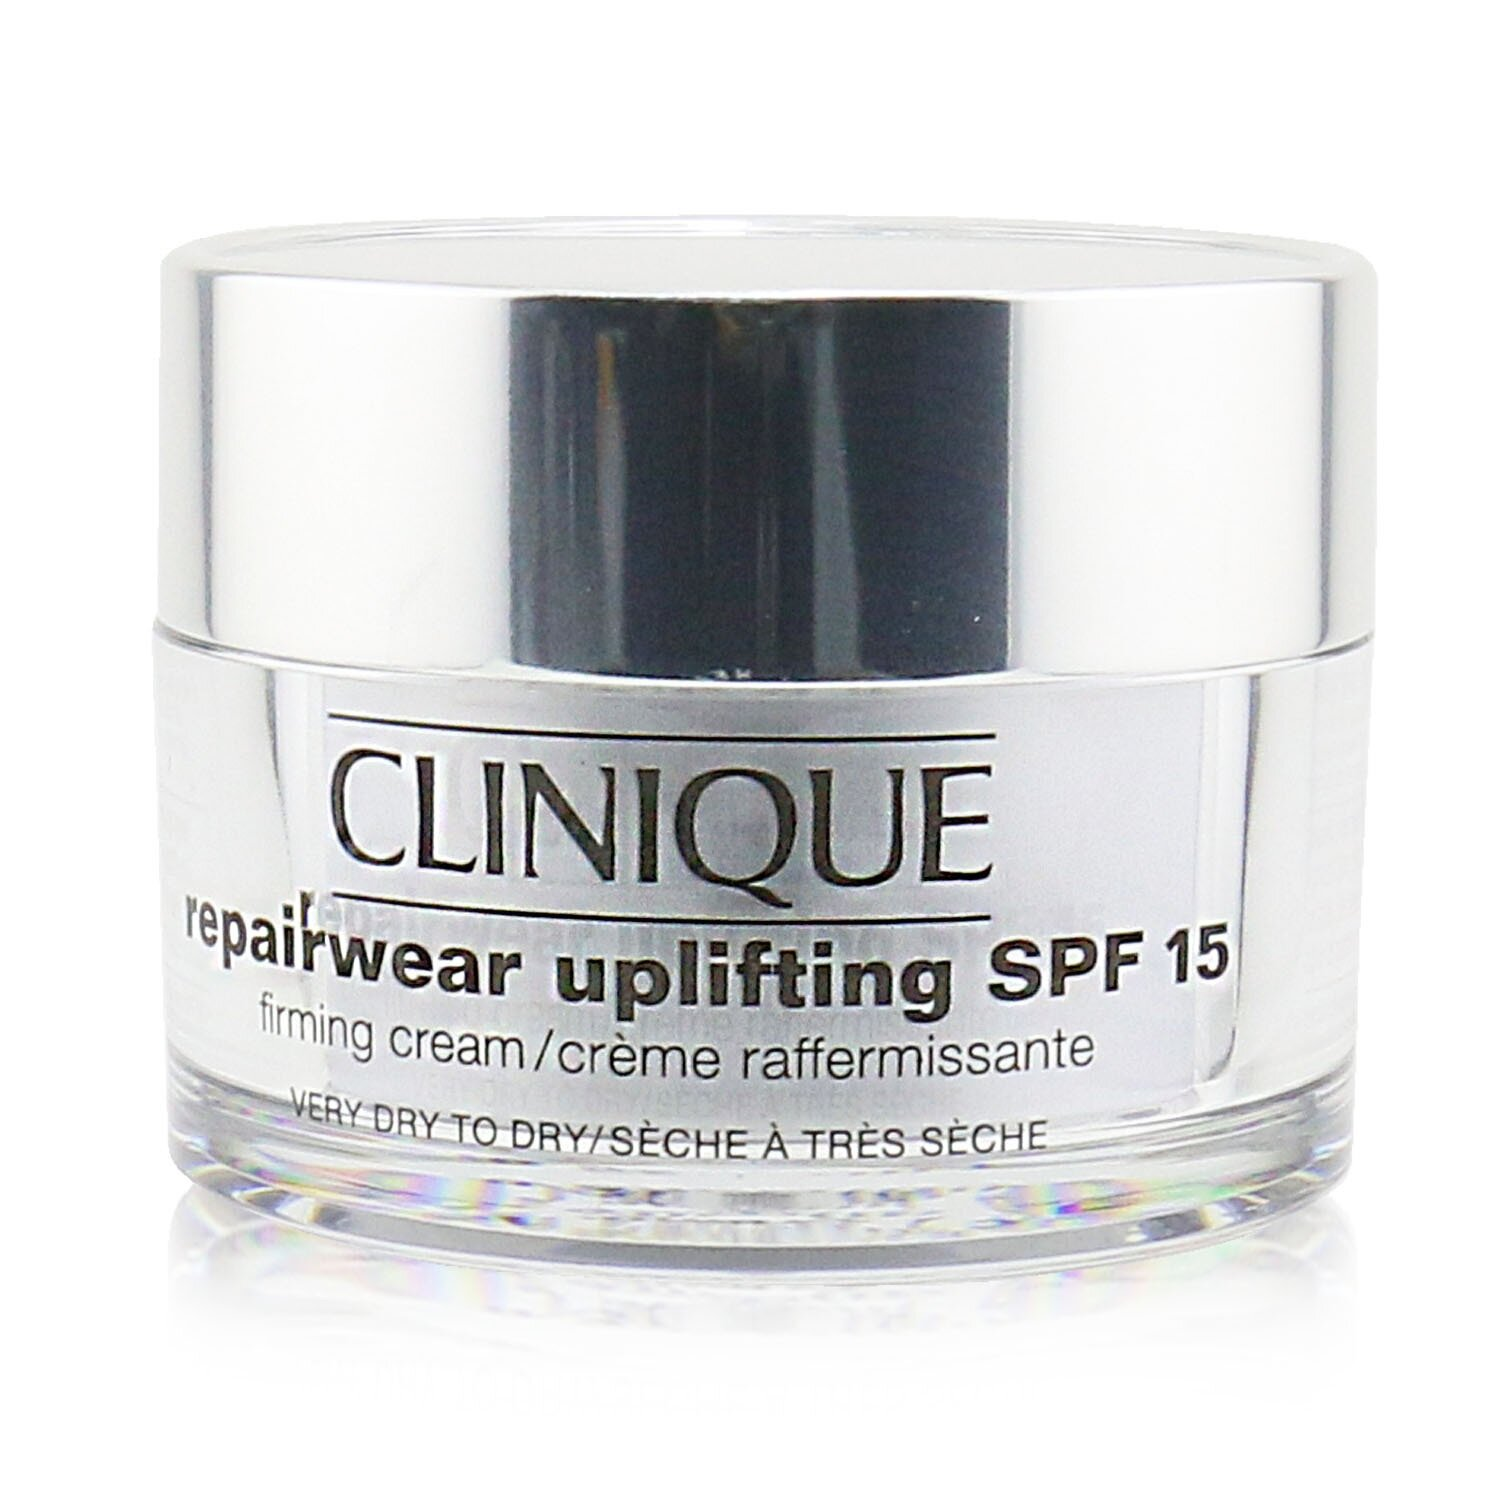 Clinique-Repairwear-Uplifting-Firming-Cream-SPF-15-Very-Dry-to-Dry-Skin-50ml